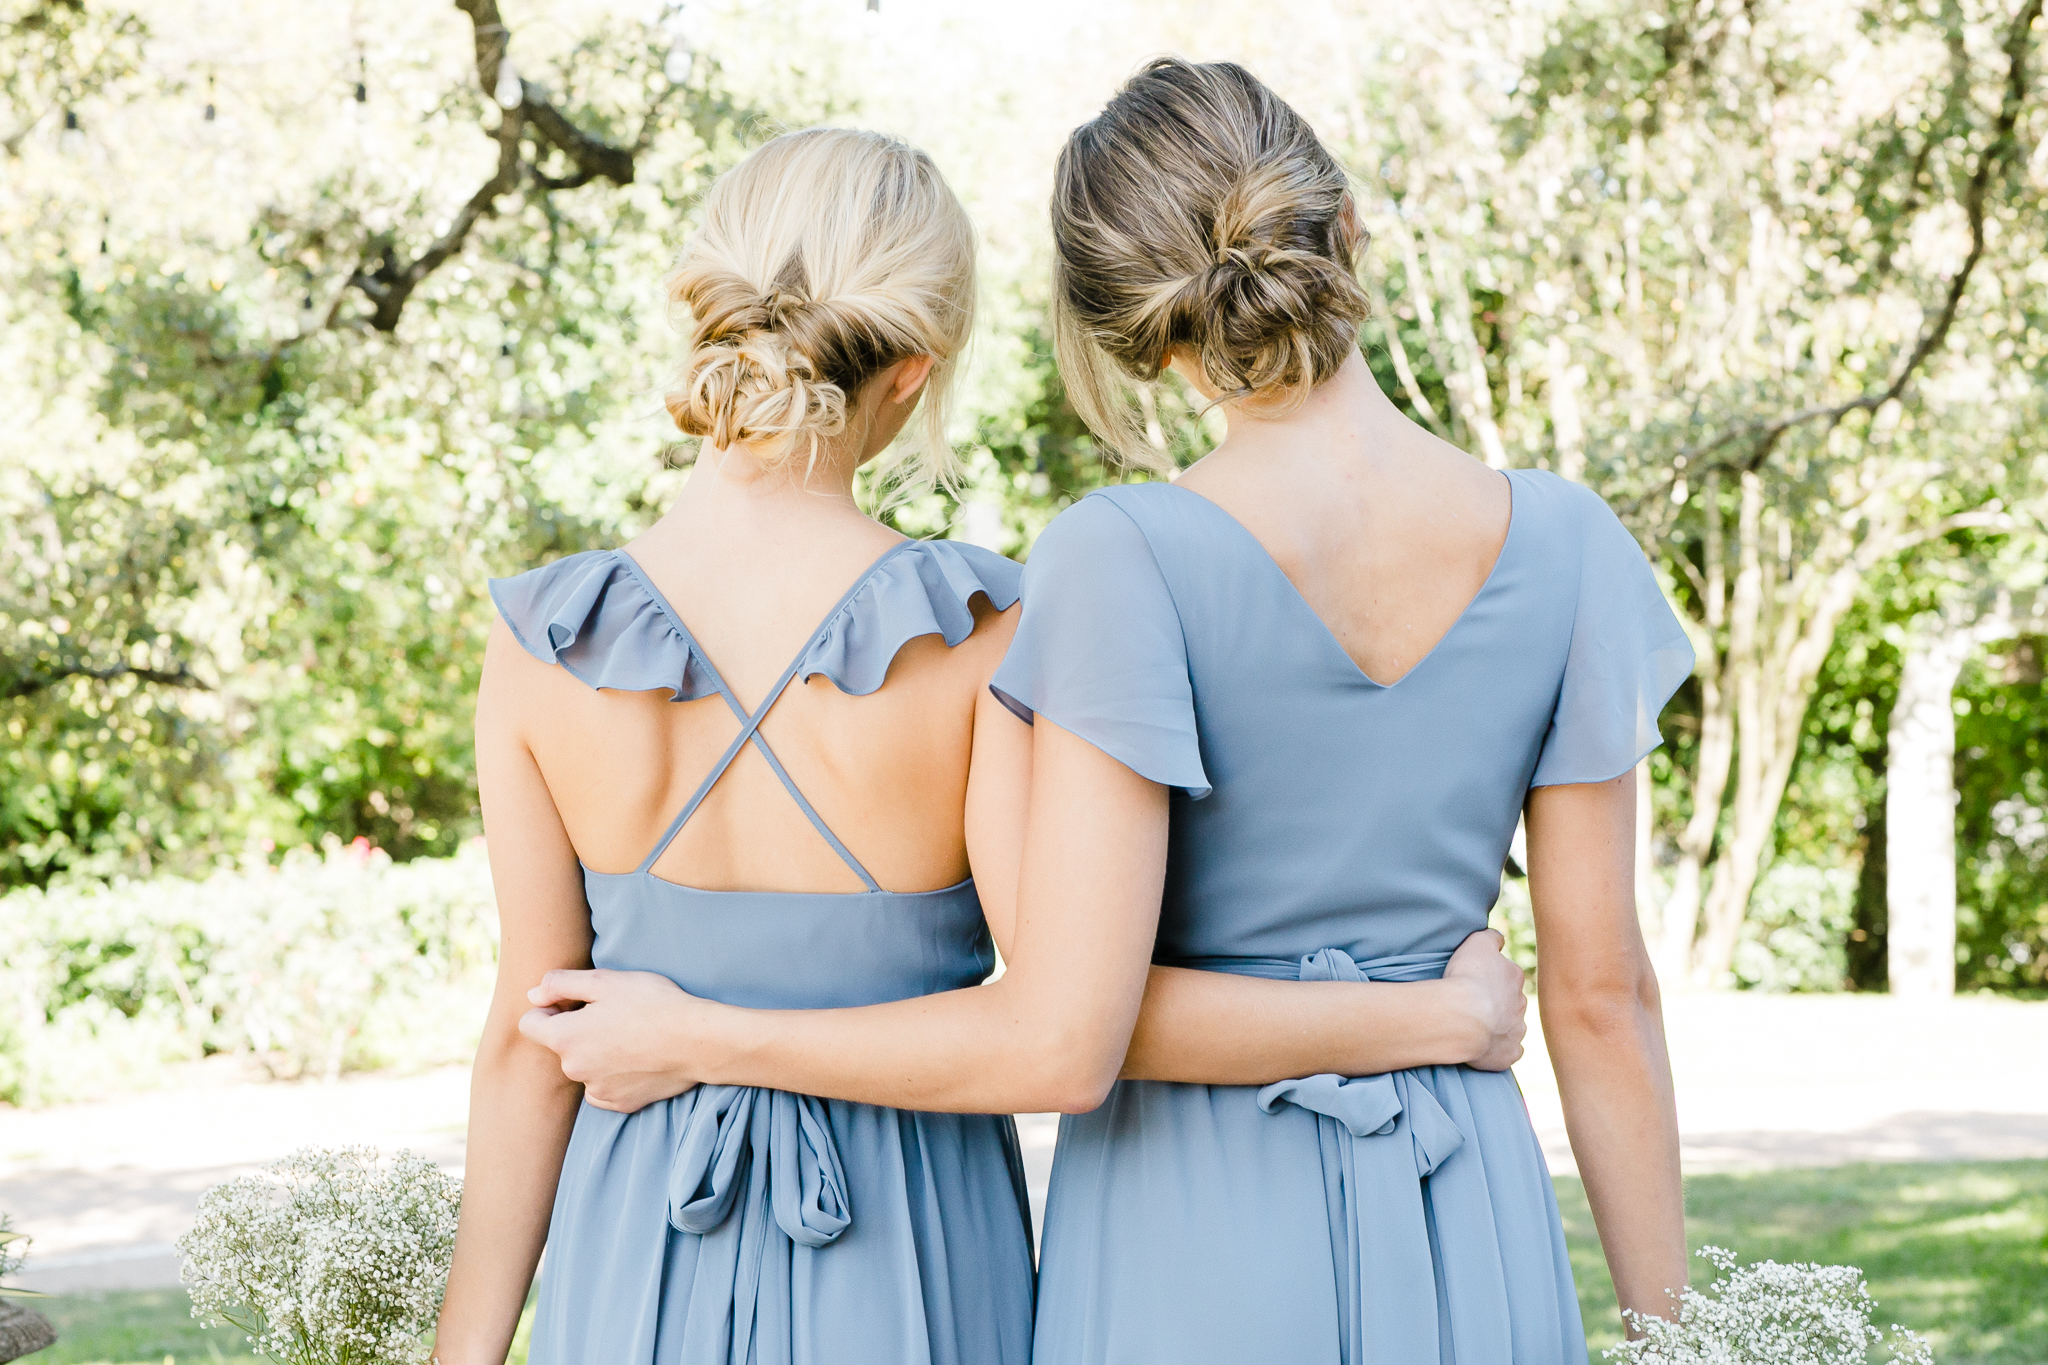 Dusty blue chiffon wrap dresses with sleeves, and ruffles. These bridesmaids are hugging and showing off the back details of these modern bridesmaids styles.